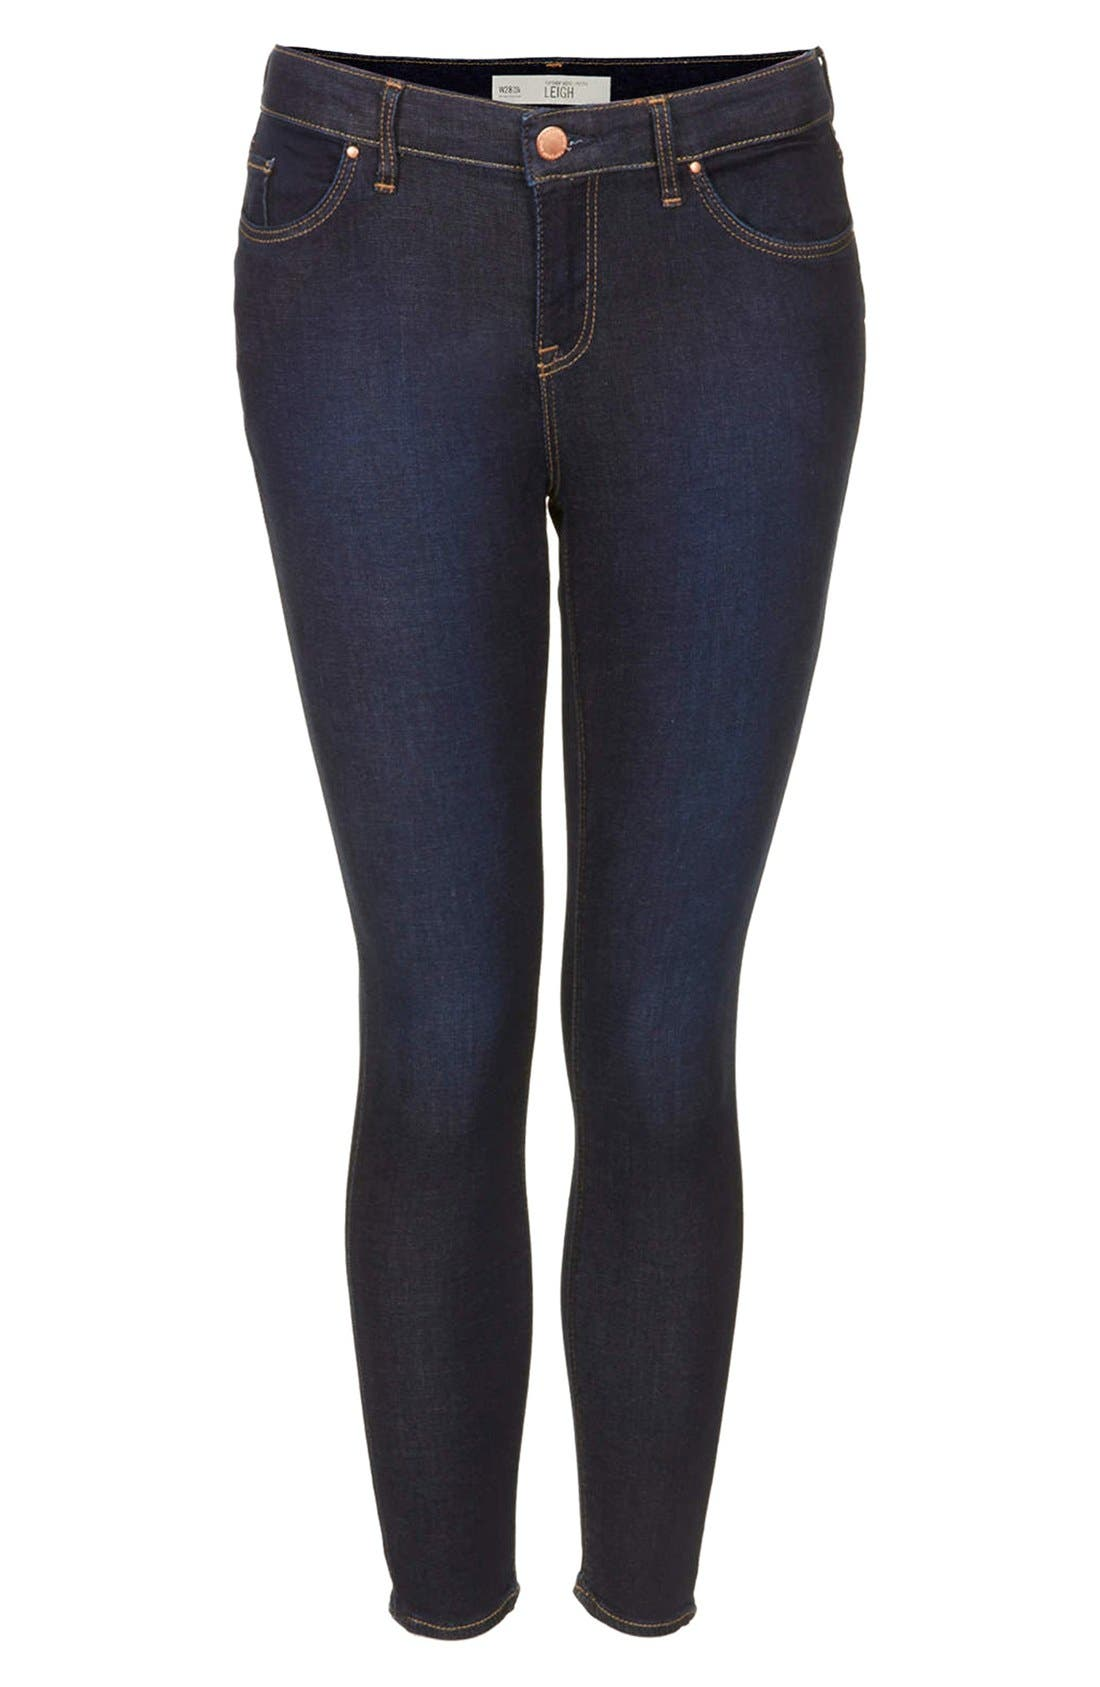 Alternate Image 3  - Topshop Moto 'Leigh' Skinny Jeans (Mid Stone) (Petite)